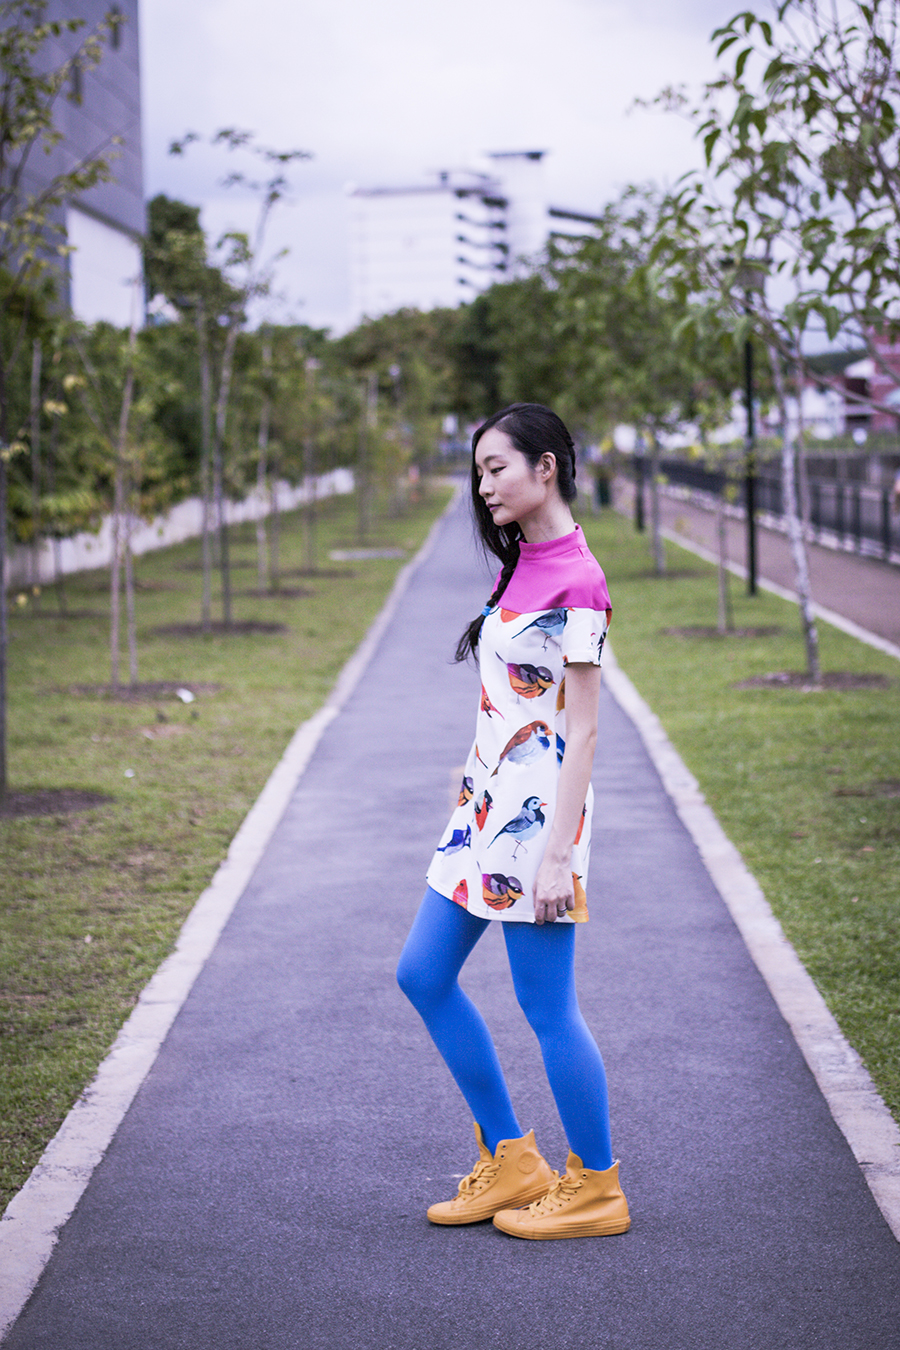 ASOS bird dress, We Love Colors blue tights, Converse yellow rubber chuck taylor sneakers.